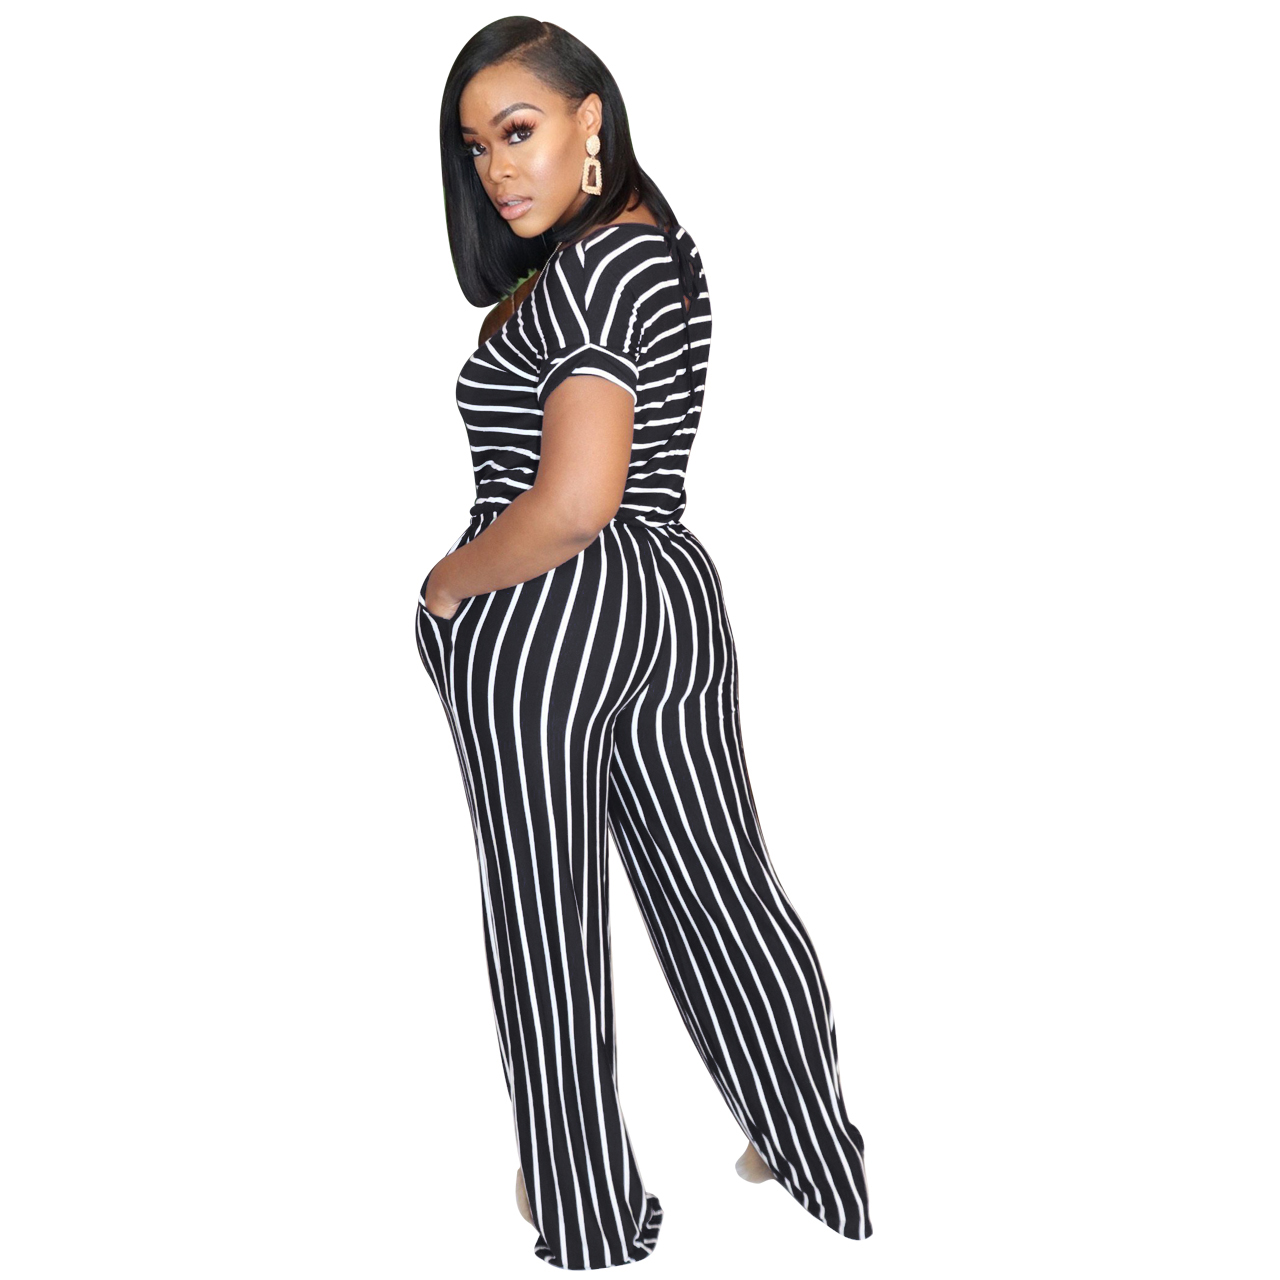 H3af5da00e4e440a2af784bd6ff1699fax - Fashion Women Stripes Jumpsuits Summer New Arrival Short Sleeves Crew Neck Women Casual Rompers Loose Daily Wear Outfits